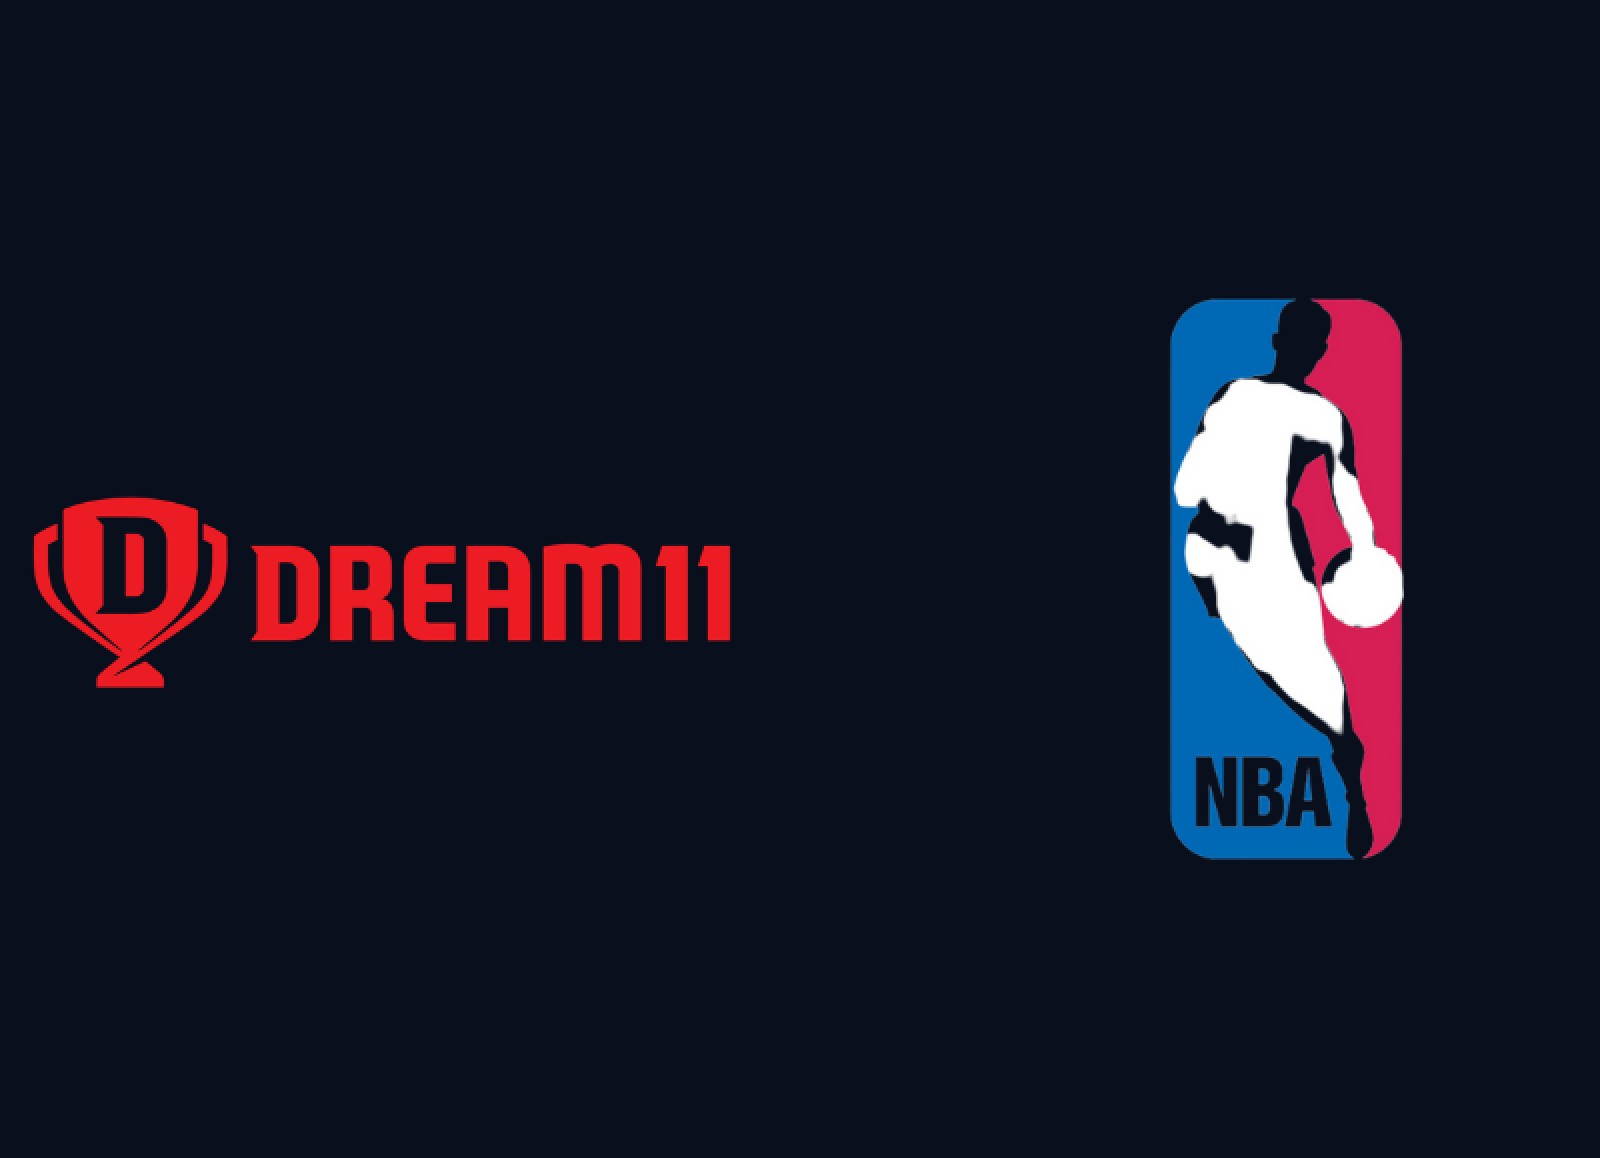 NBA and Dream11 plans to extend their fantasy gaming partnership